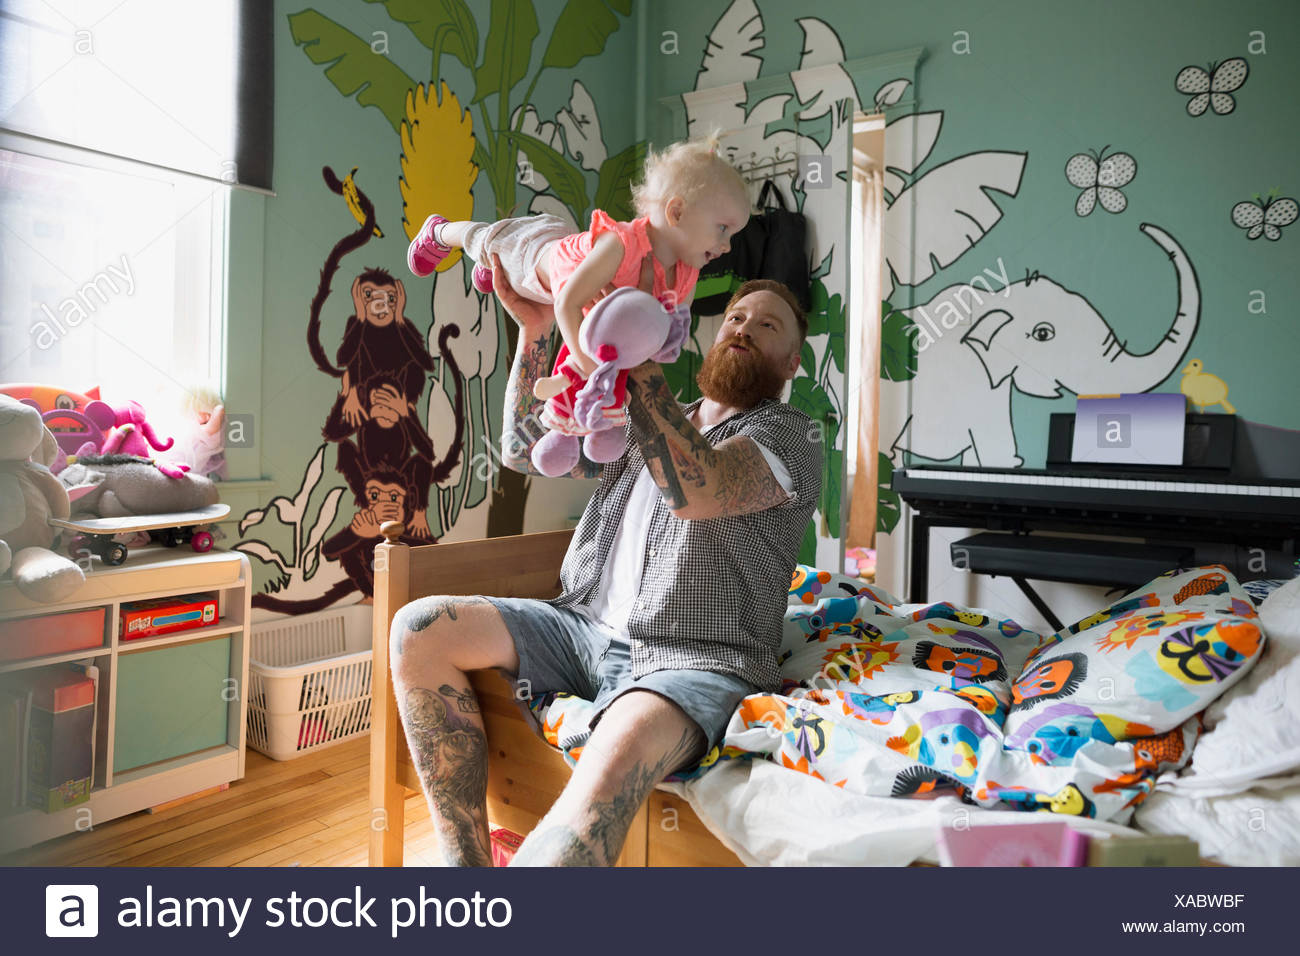 Playful father flying daughter in bedroom - Stock Image